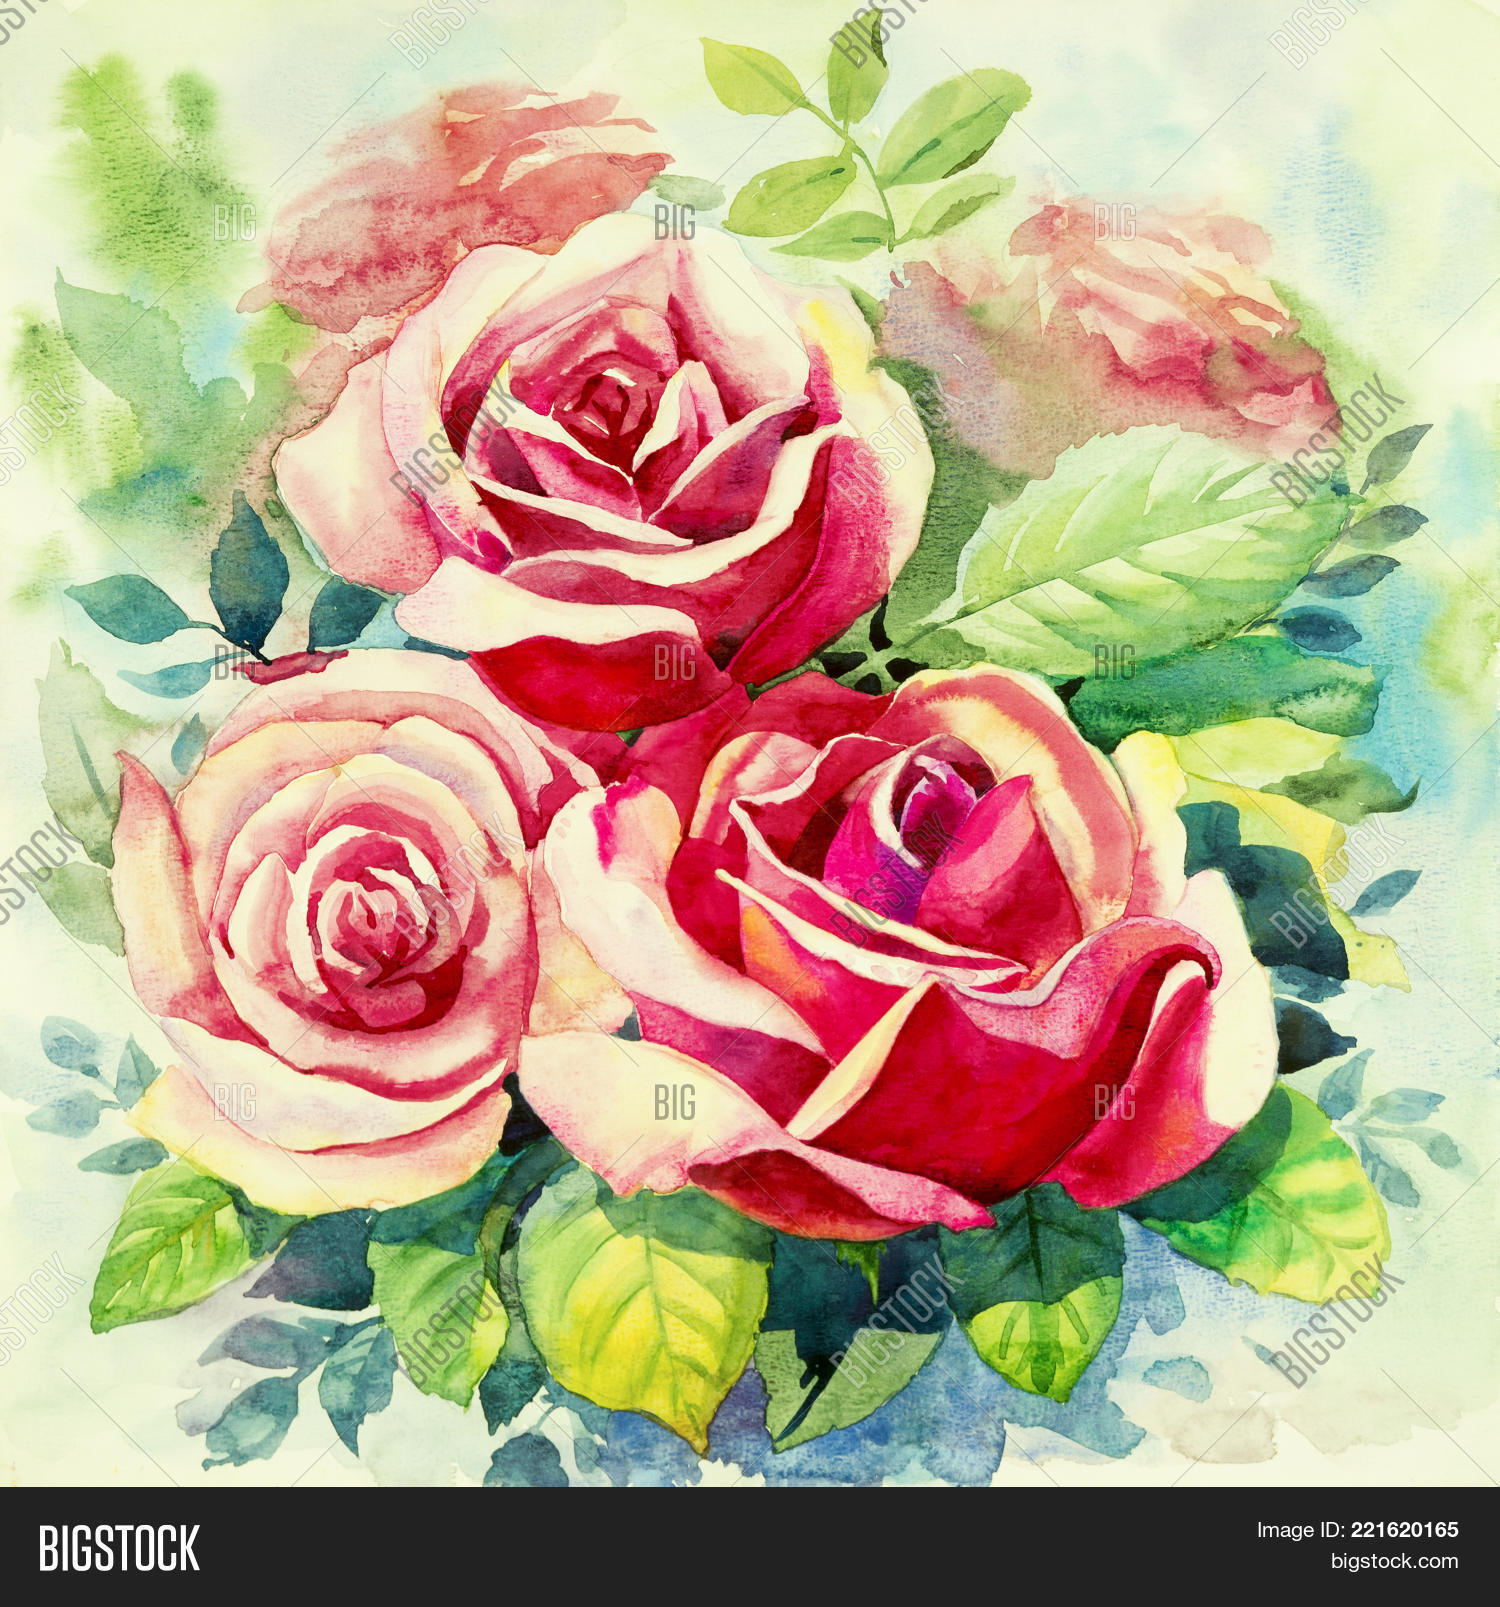 Watercolor Painting Image & Photo (Free Trial) | Bigstock